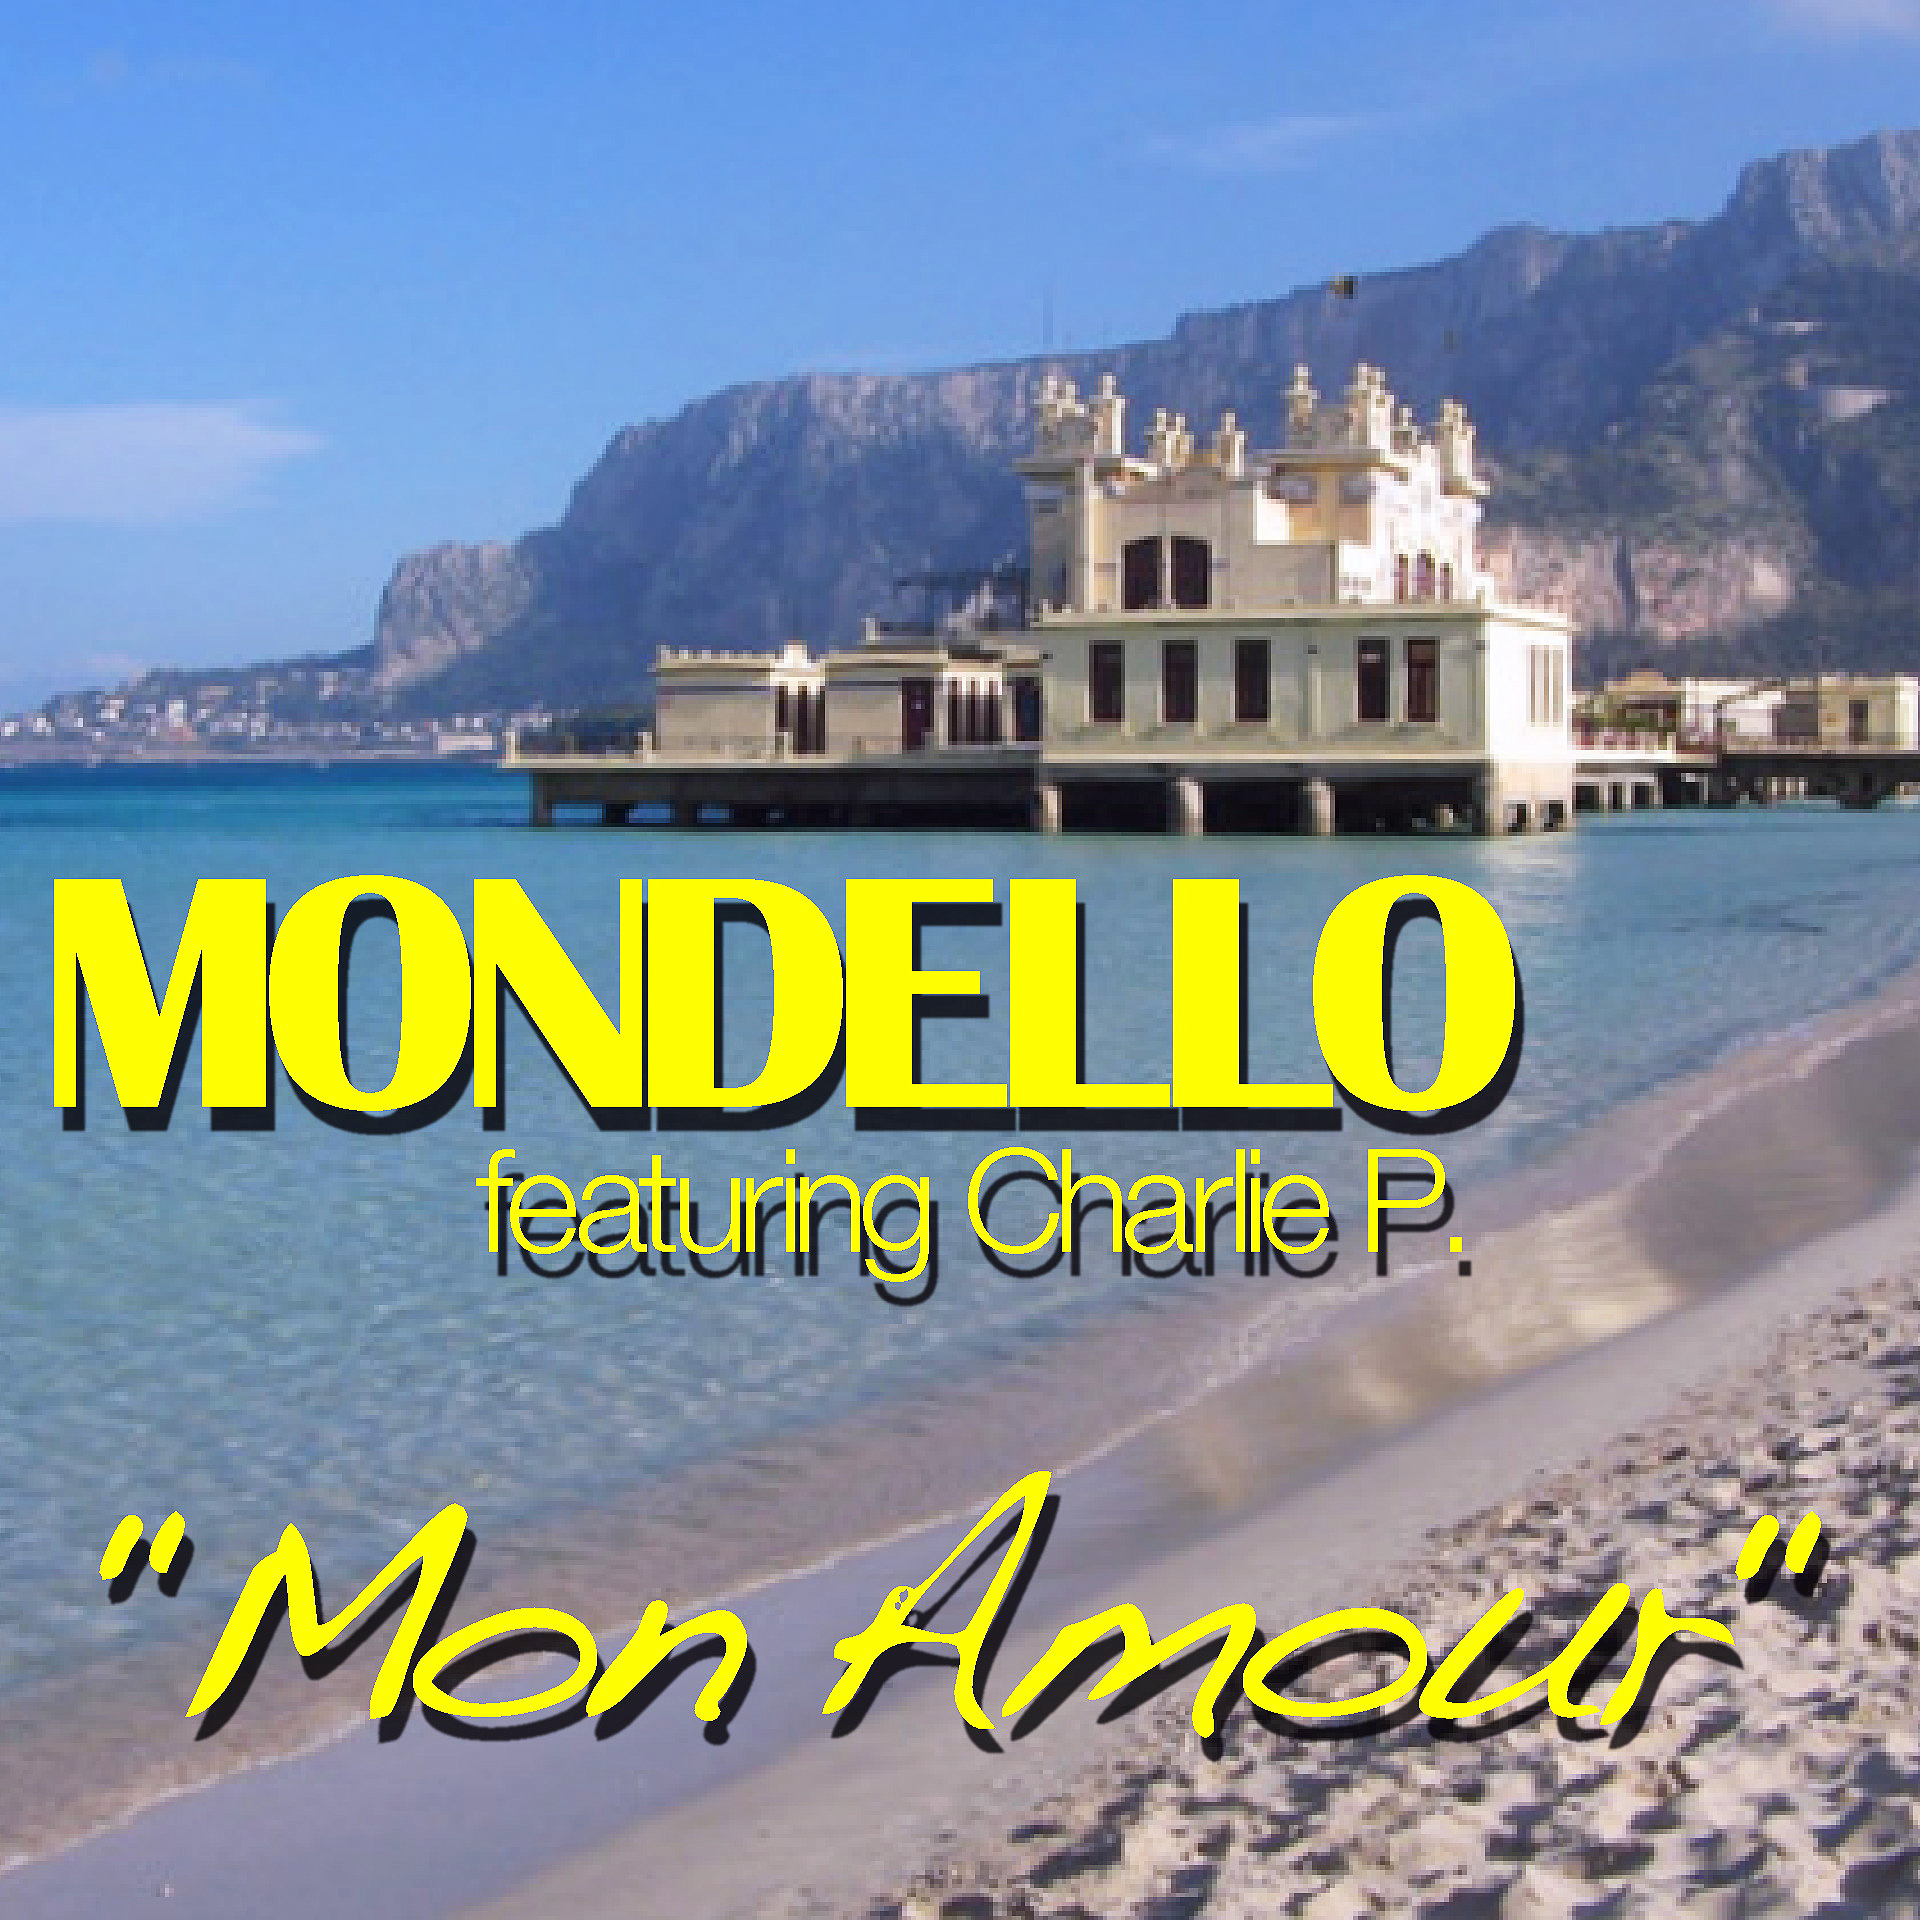 Mondello feat. Charlie P - Mon Amour (Gelato Mix) [Radio Edit]